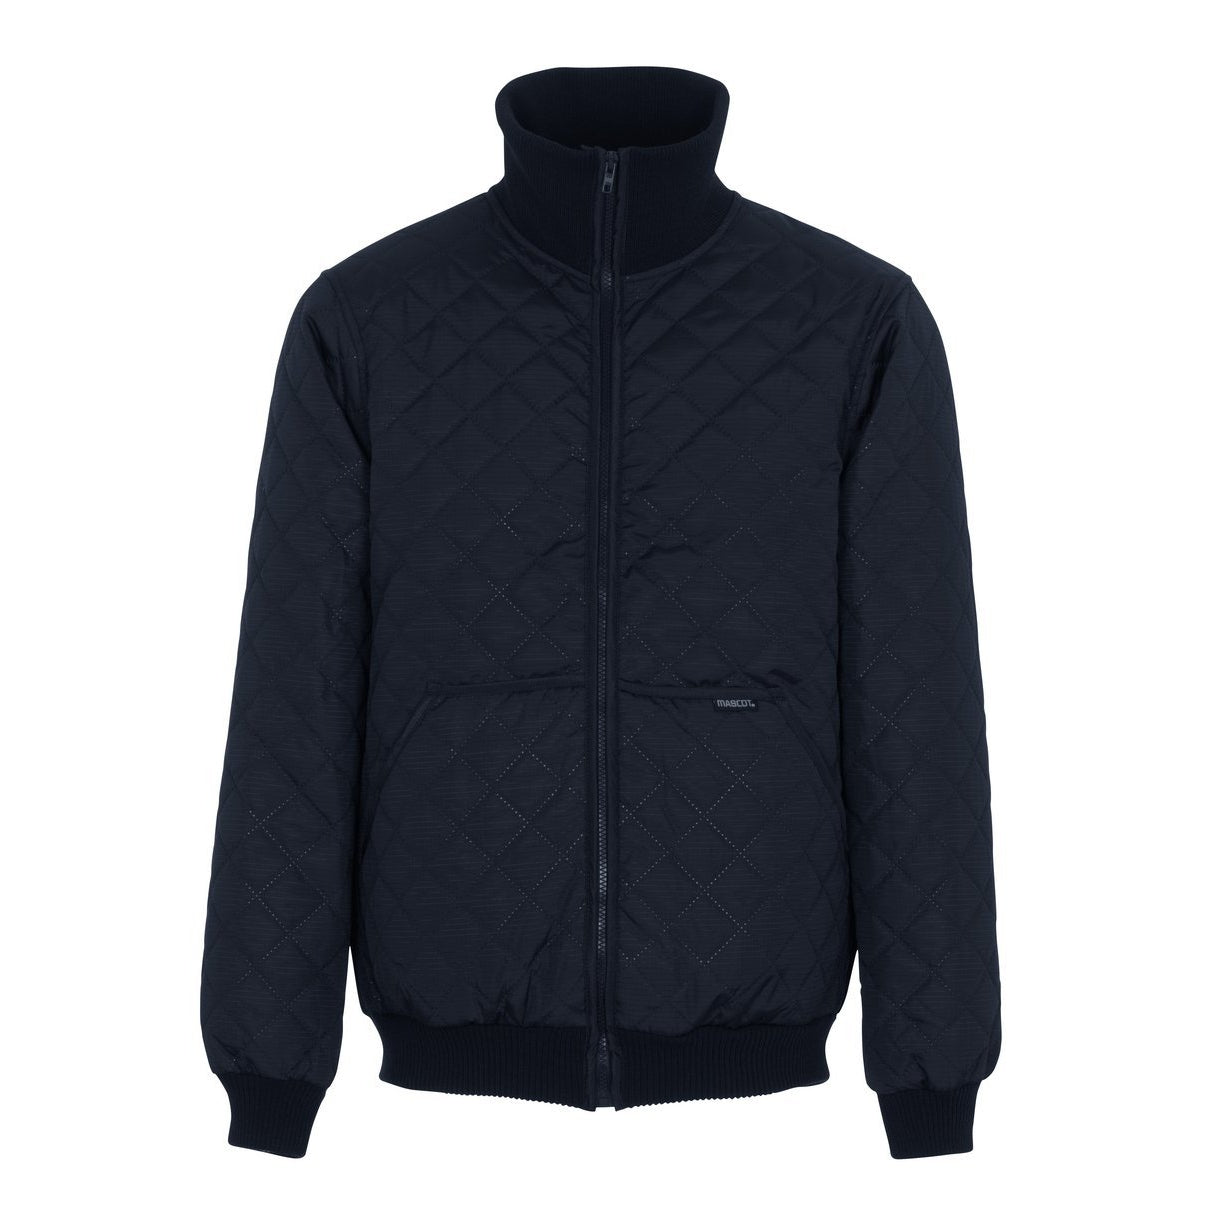 Mascot Dundee Originals Thermal Jacket